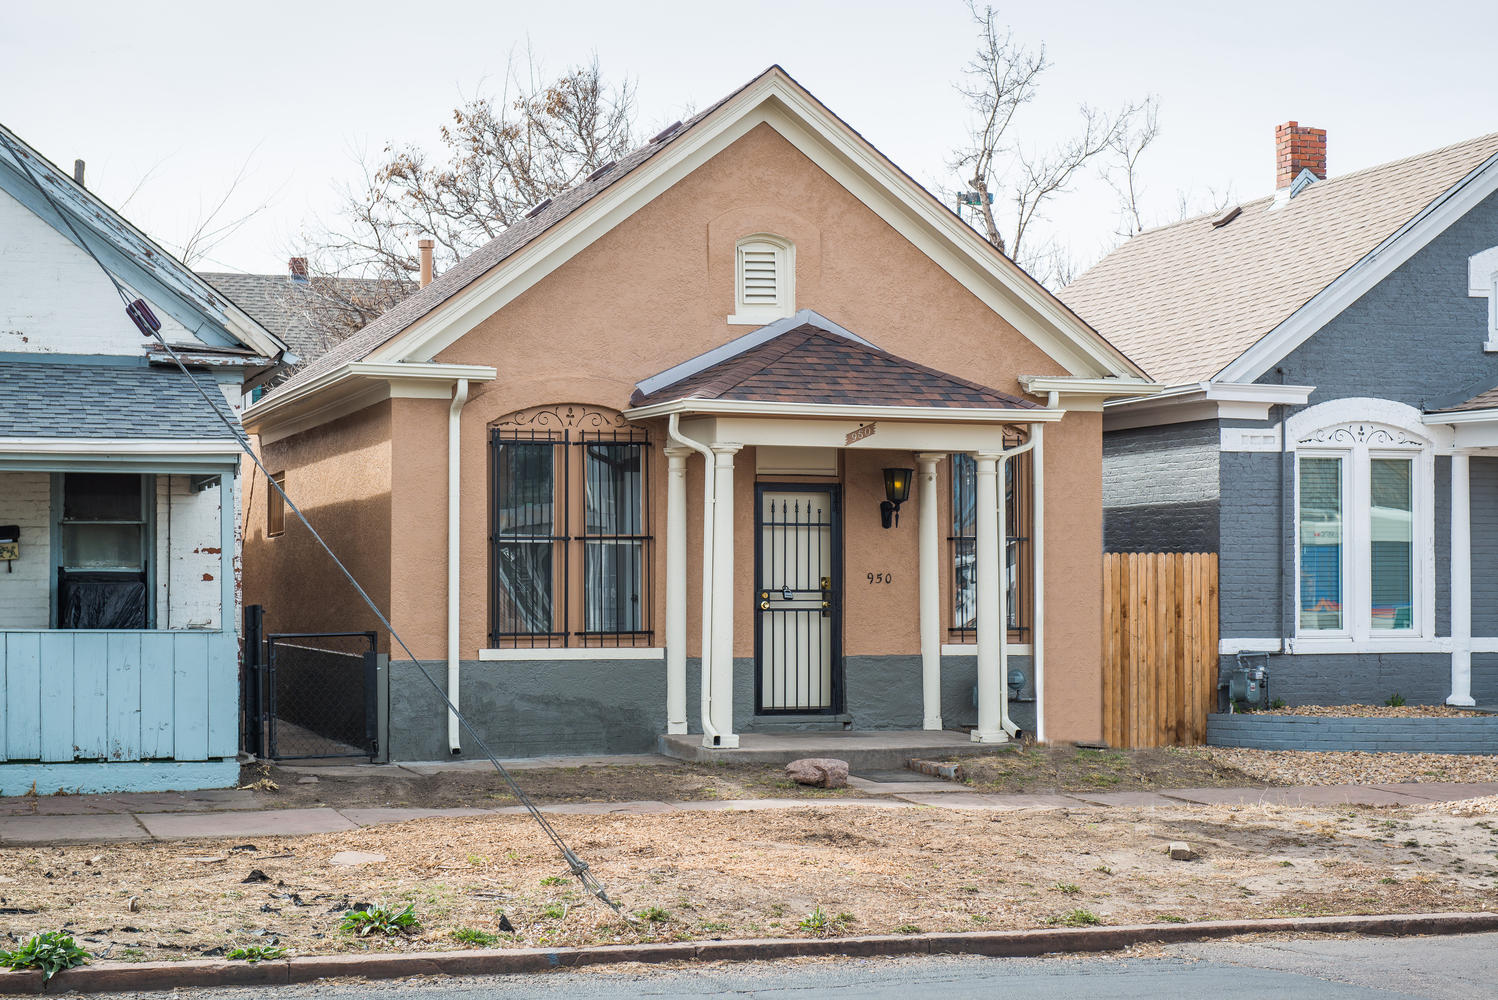 Single Family Home for Sale at Perfect location for this Victorian Ranch Style Home 950 W 7th Ave Denver, Colorado, 80204 United States